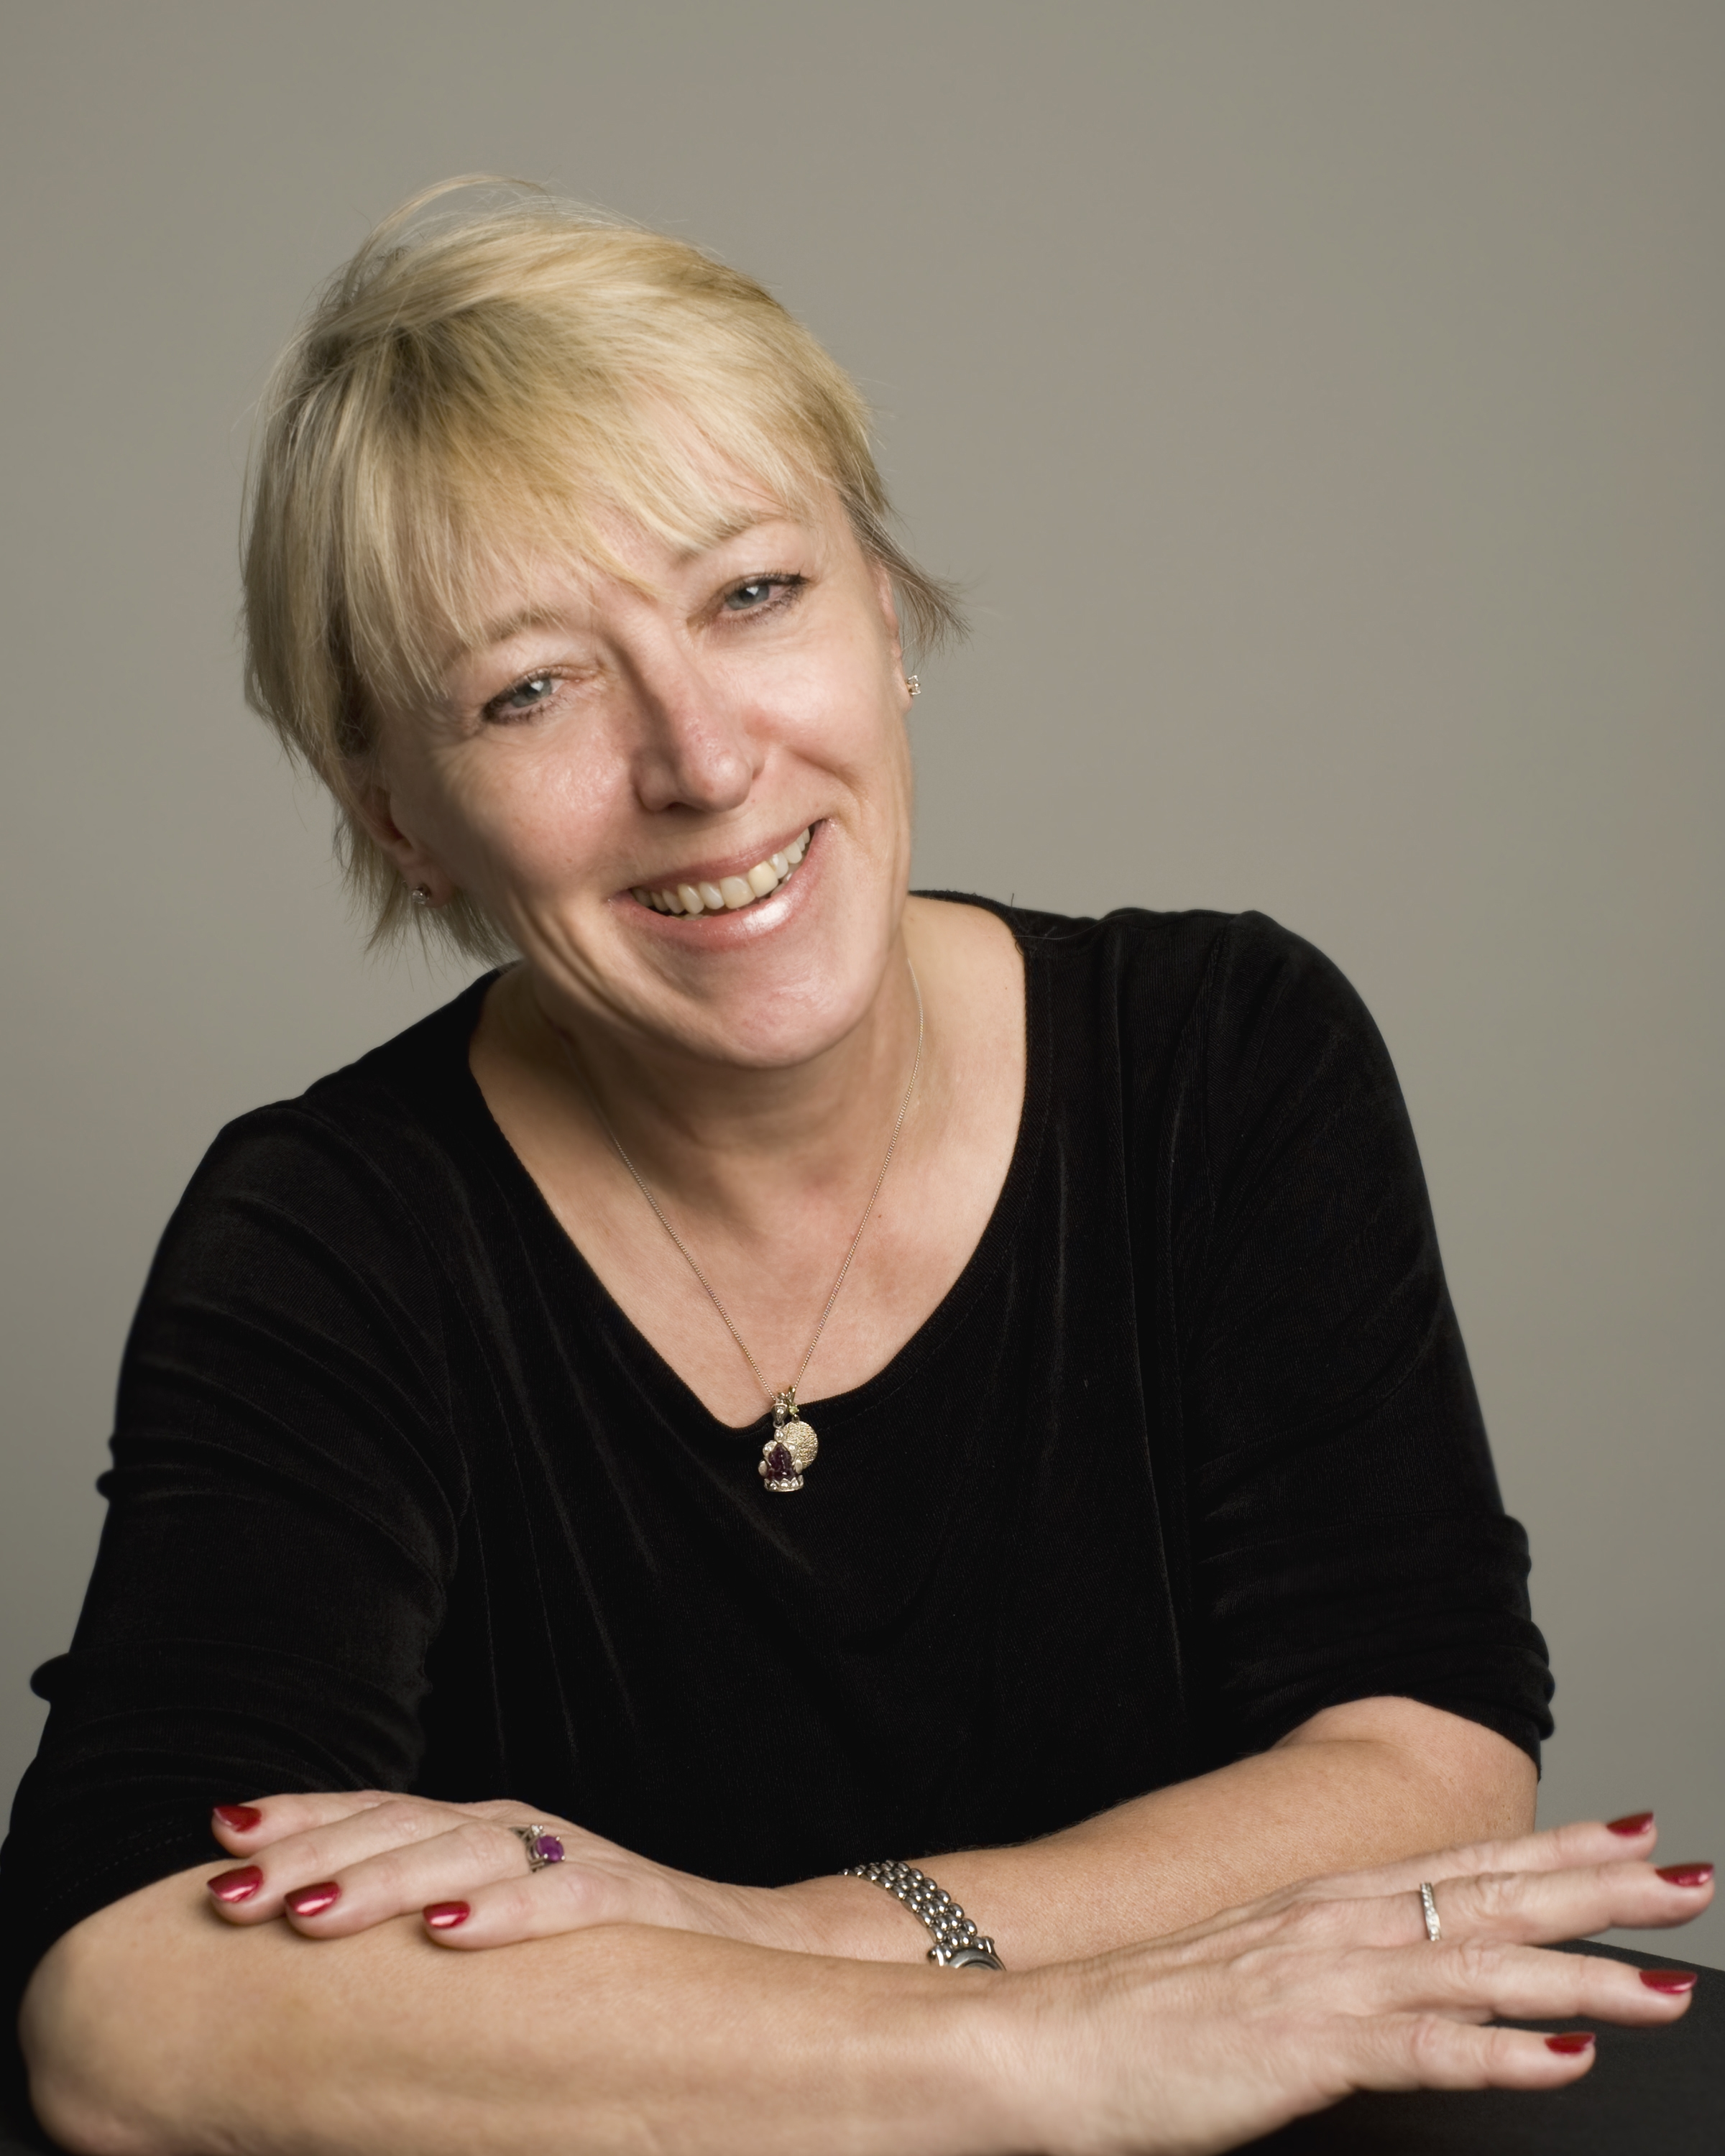 Jody Williams, the founding coordinator of the International Campaign to Ban Landmines (ICBL)